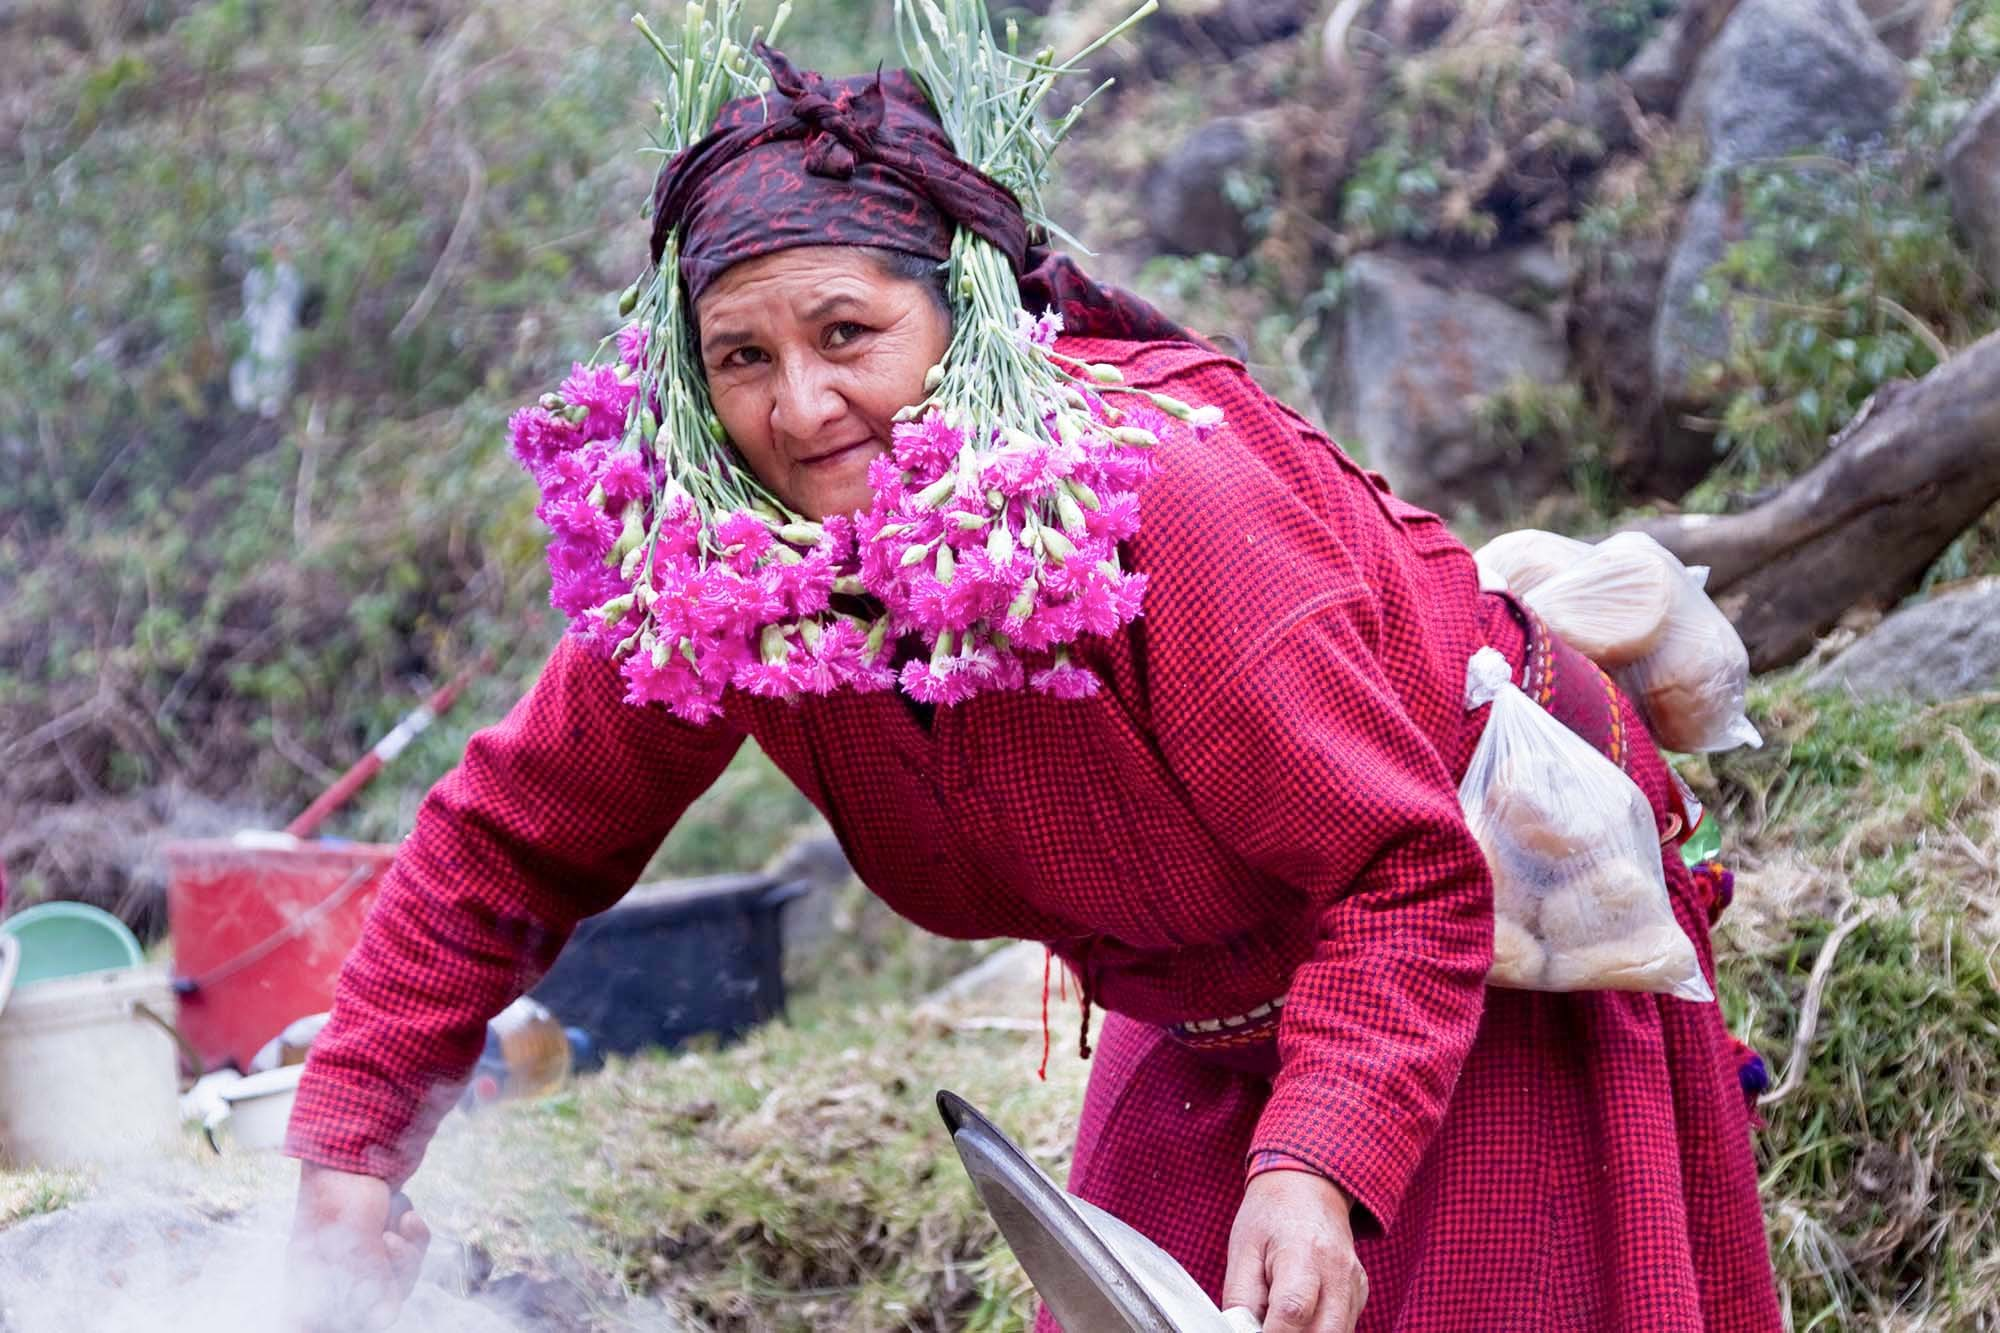 To clean and prepare the soil for sowing  (amrutzpta) ,  the owner of the farm invites friends and family members to help.  The  owner wears flowers and cooks a large meal for everyone.  The following  days, the owner returns the favor and helps at someone else's farm.   Clorinda Ramirez is cooking today!